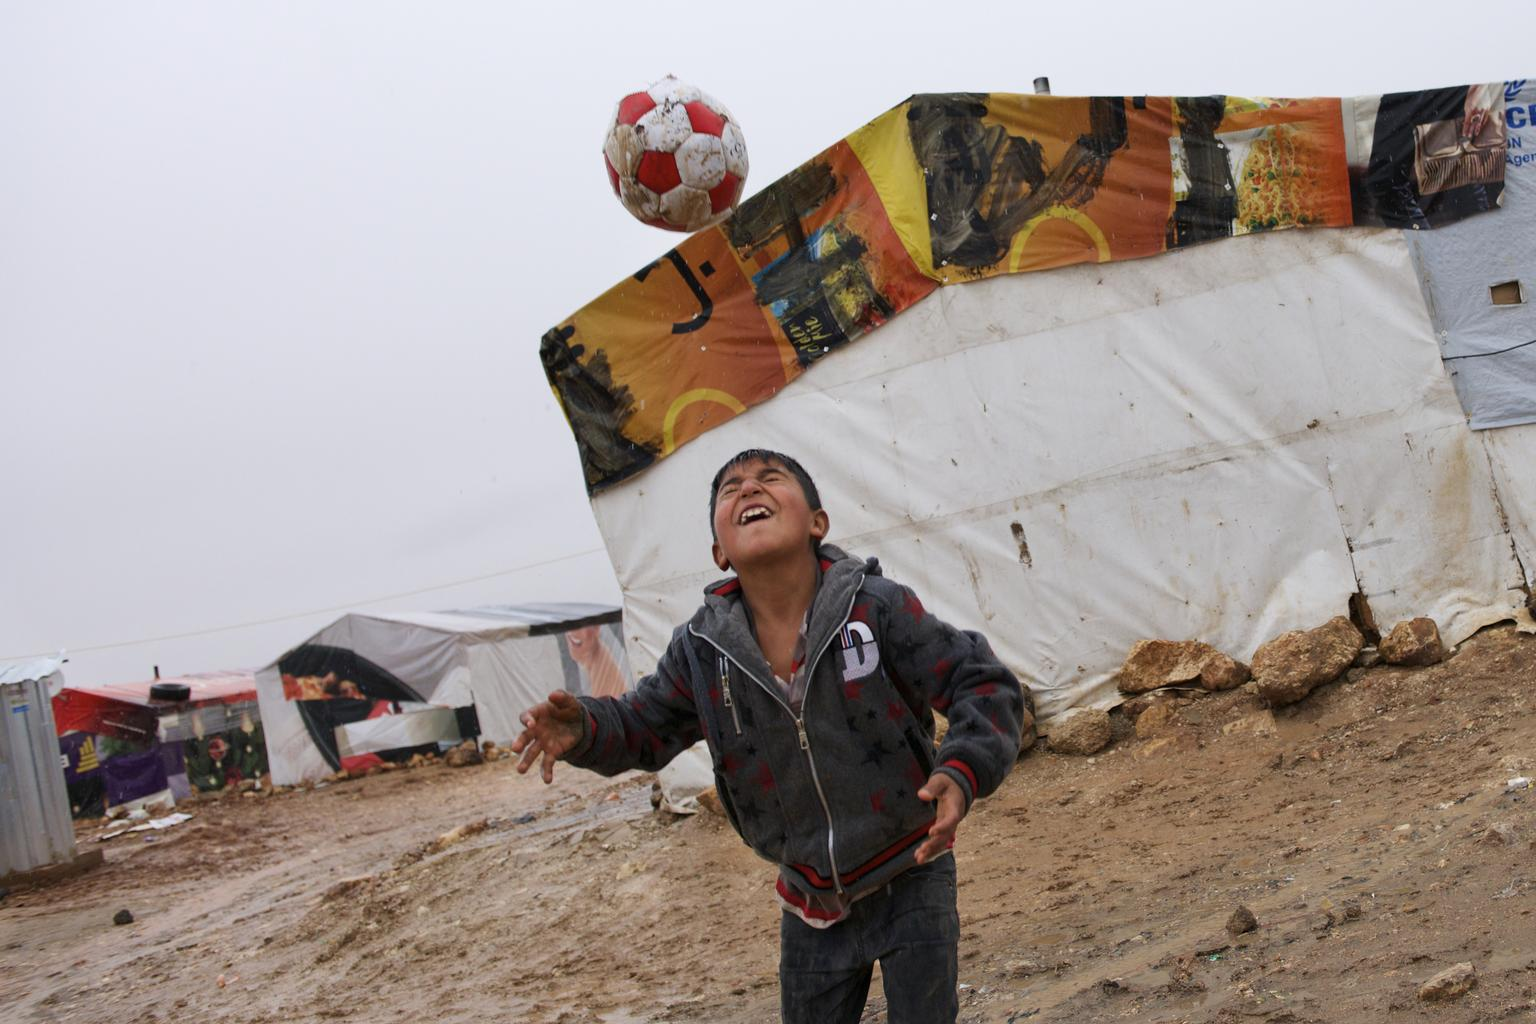 Hamid, from Syrian, plays with a football outside his family's tent shelter, in the Tal Al Abiad informal settlement in Baalbek, Lebanon.